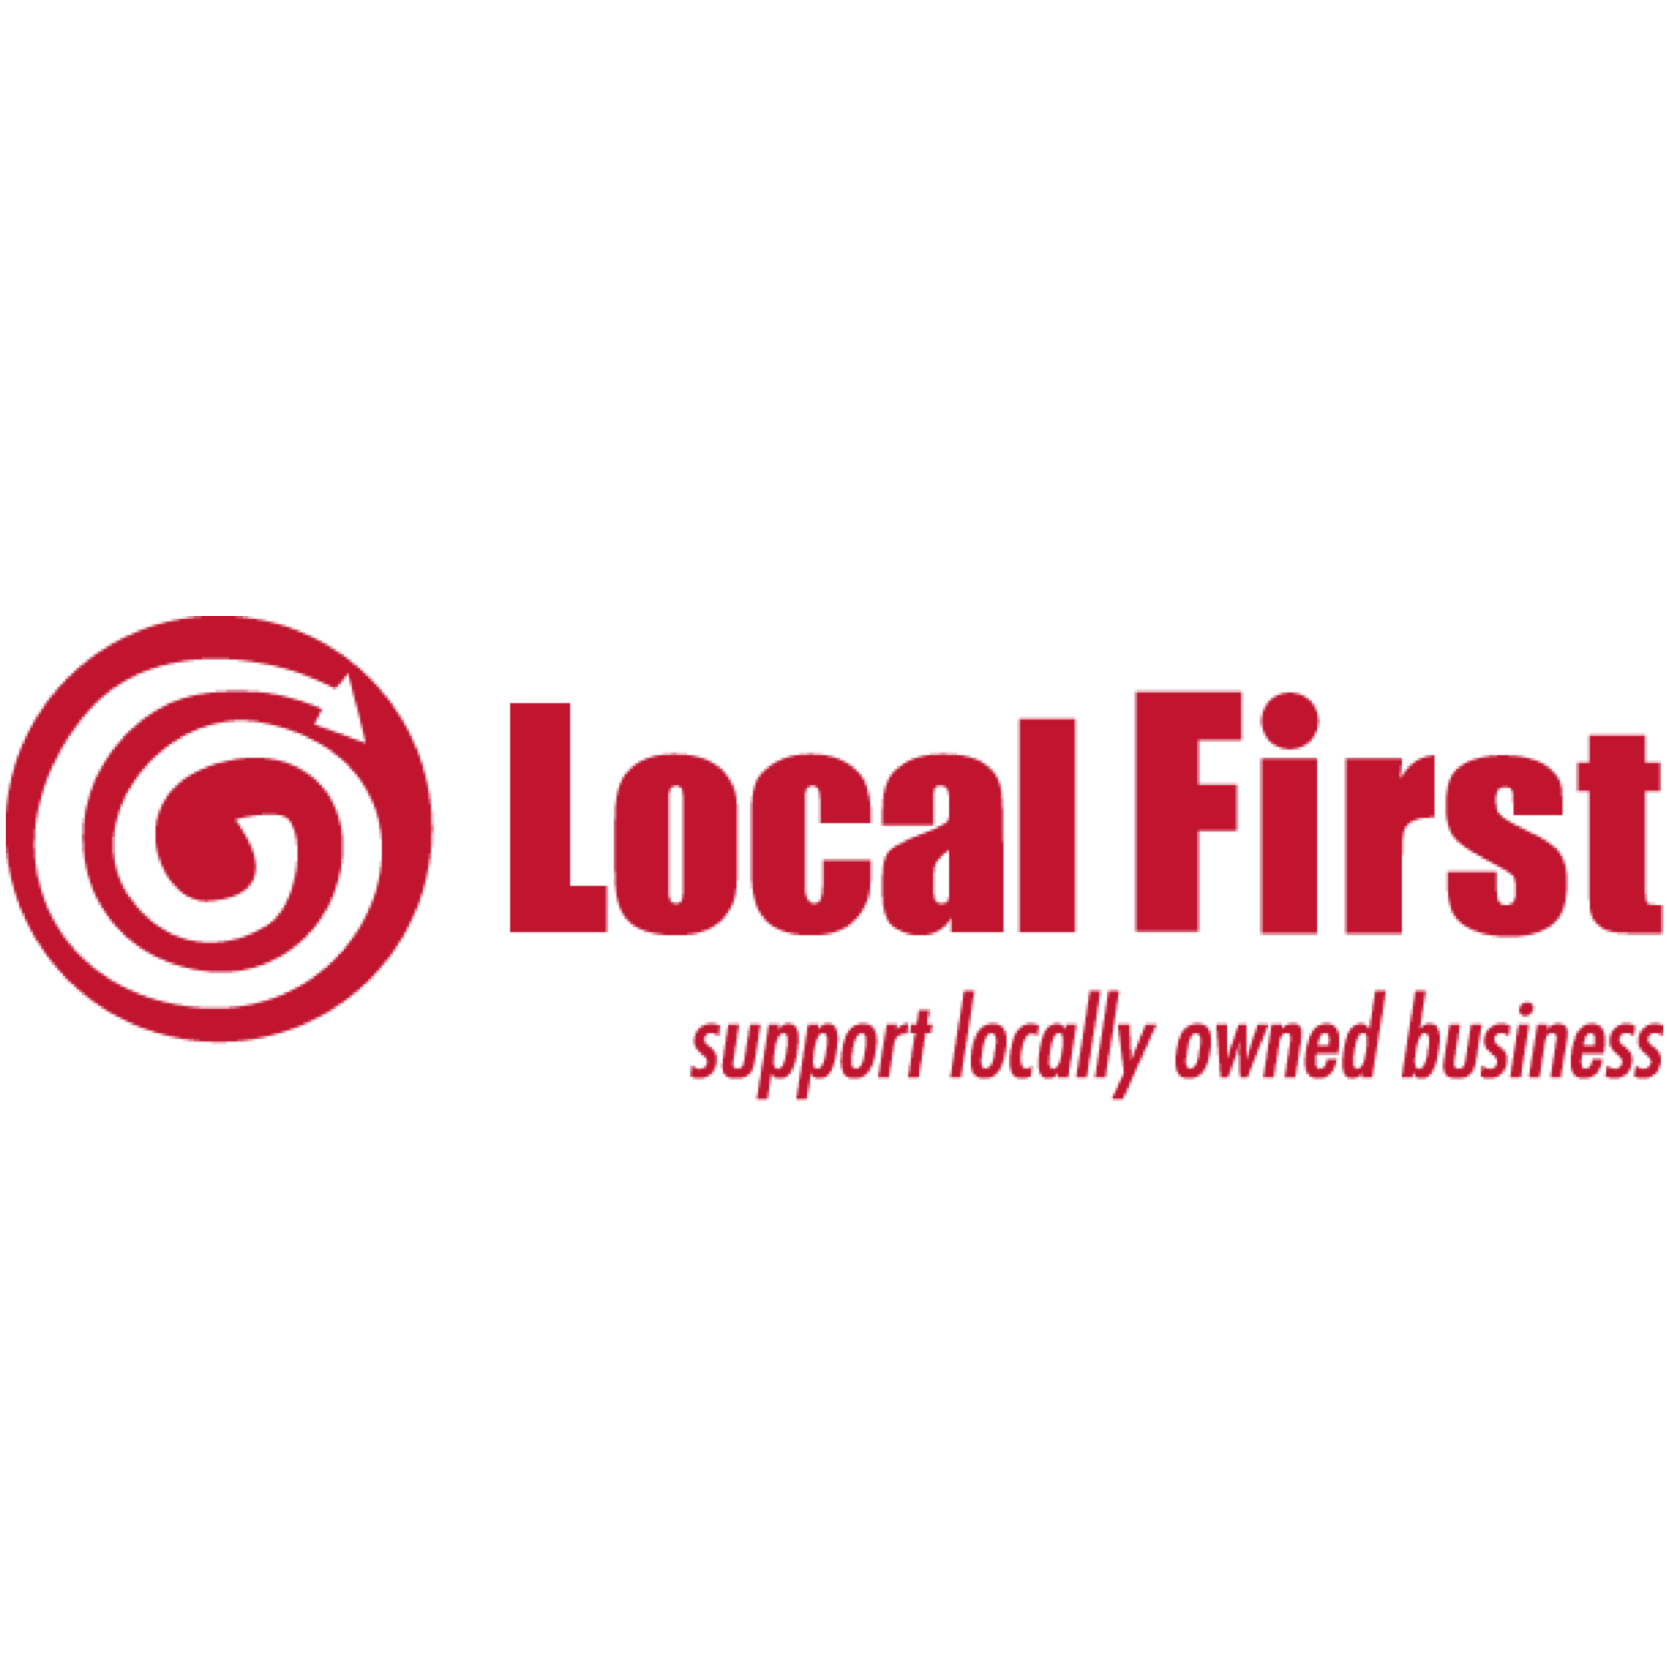 local first.png